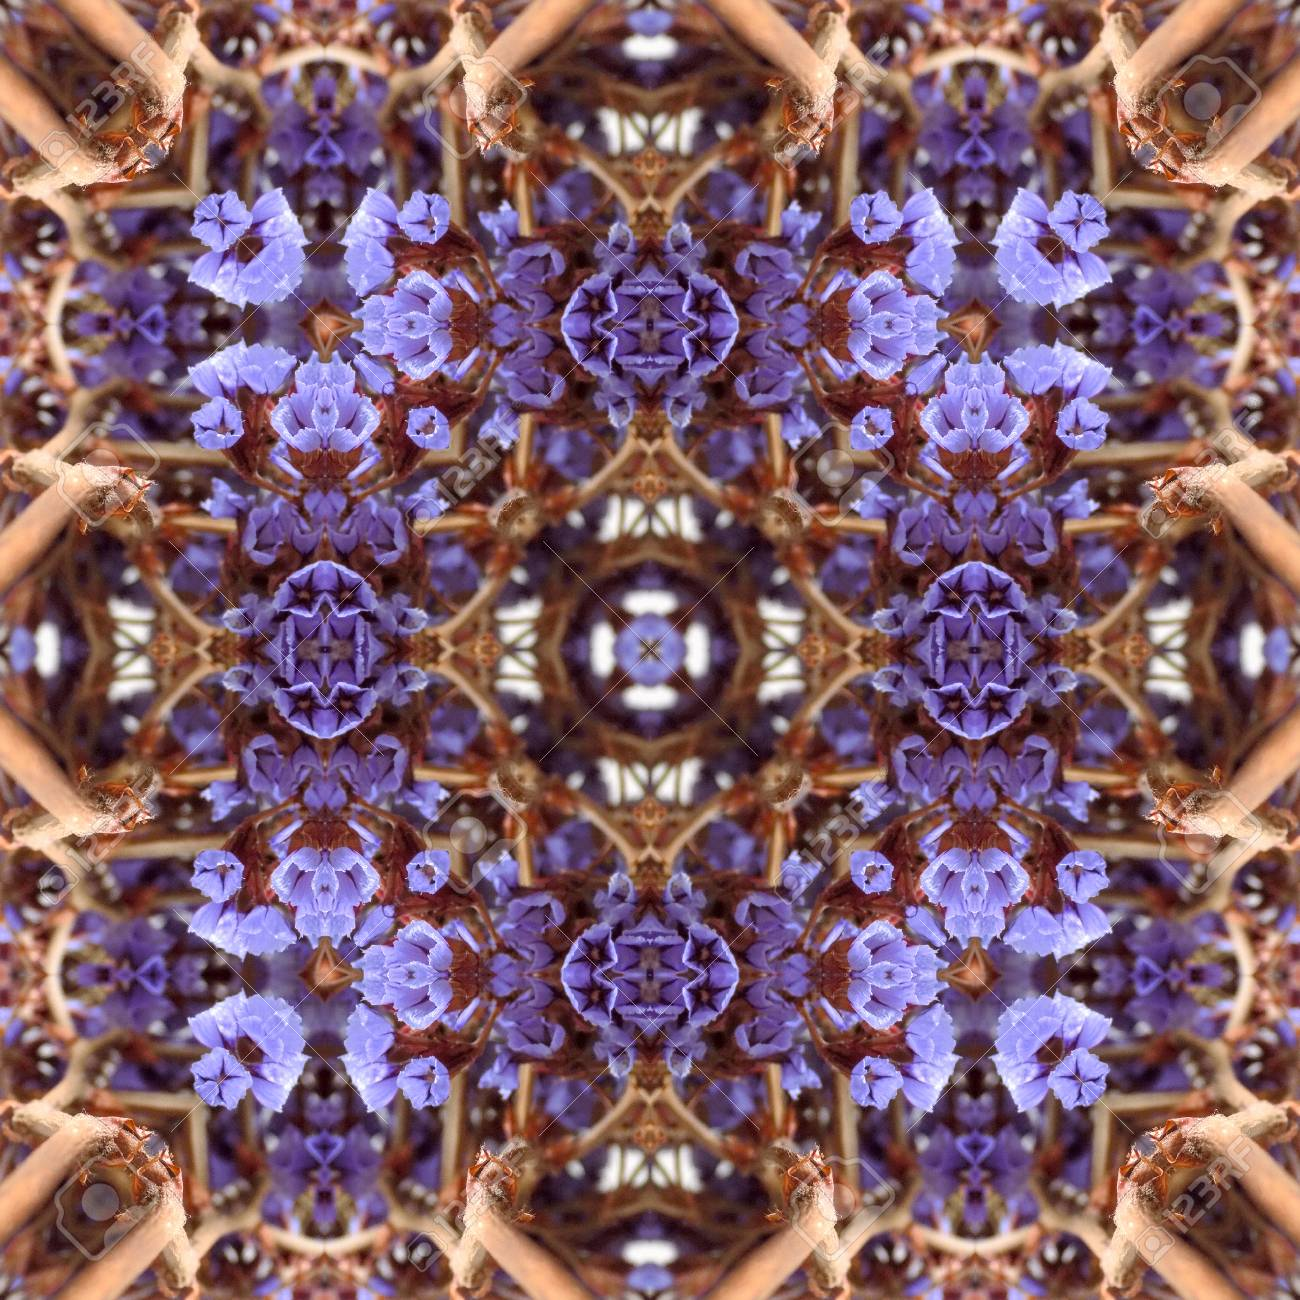 Abstract flowers seamless pattern background. Kaleidoscope from flowers. Hydraulic tile design. - 104074684